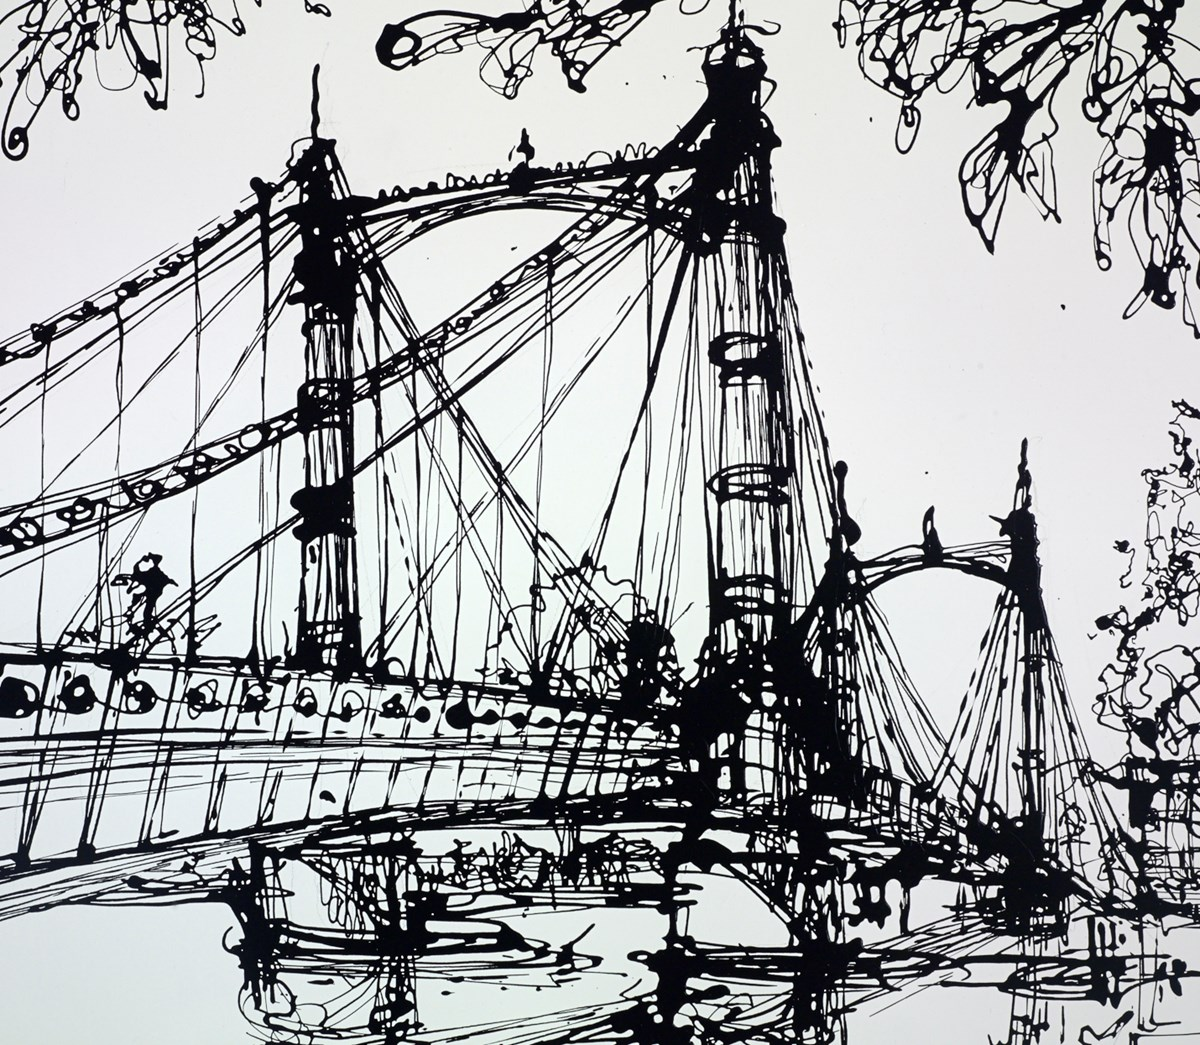 The Albert Bridge by ingo -  sized 24x20 inches. Available from Whitewall Galleries